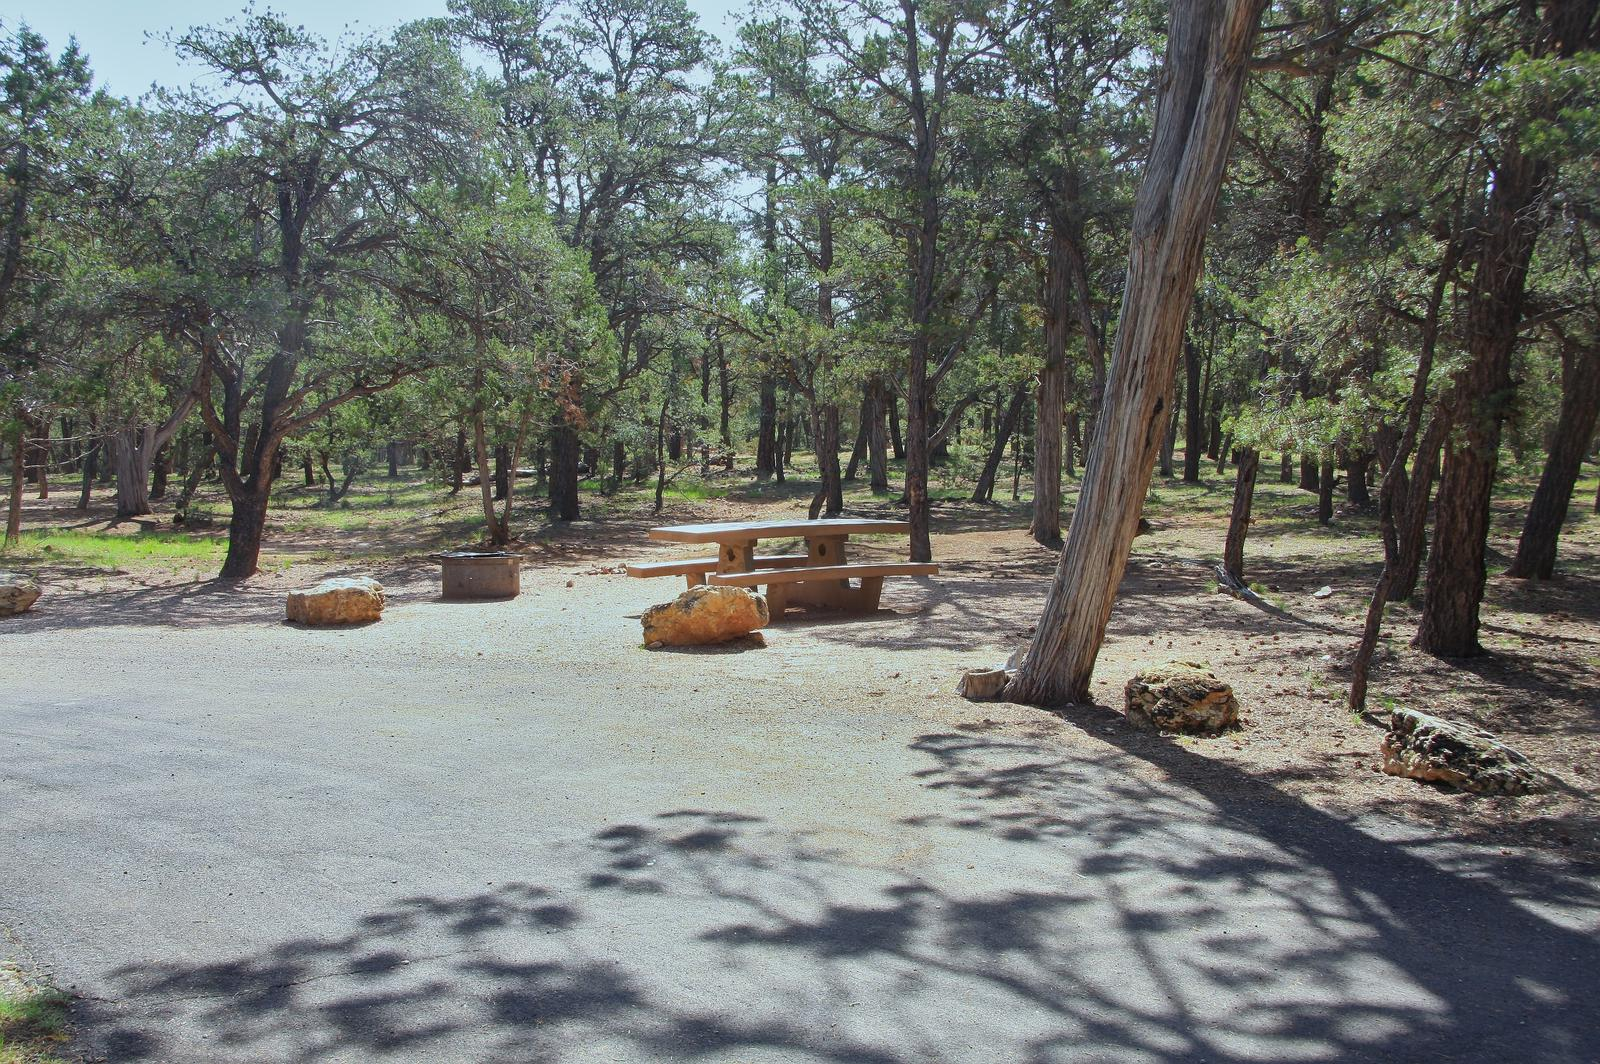 Picnic table, fire pit, and park spot, Mather CampgroundPicnic table, fire pit, and park spot for Oak Loop 239, Mather Campground